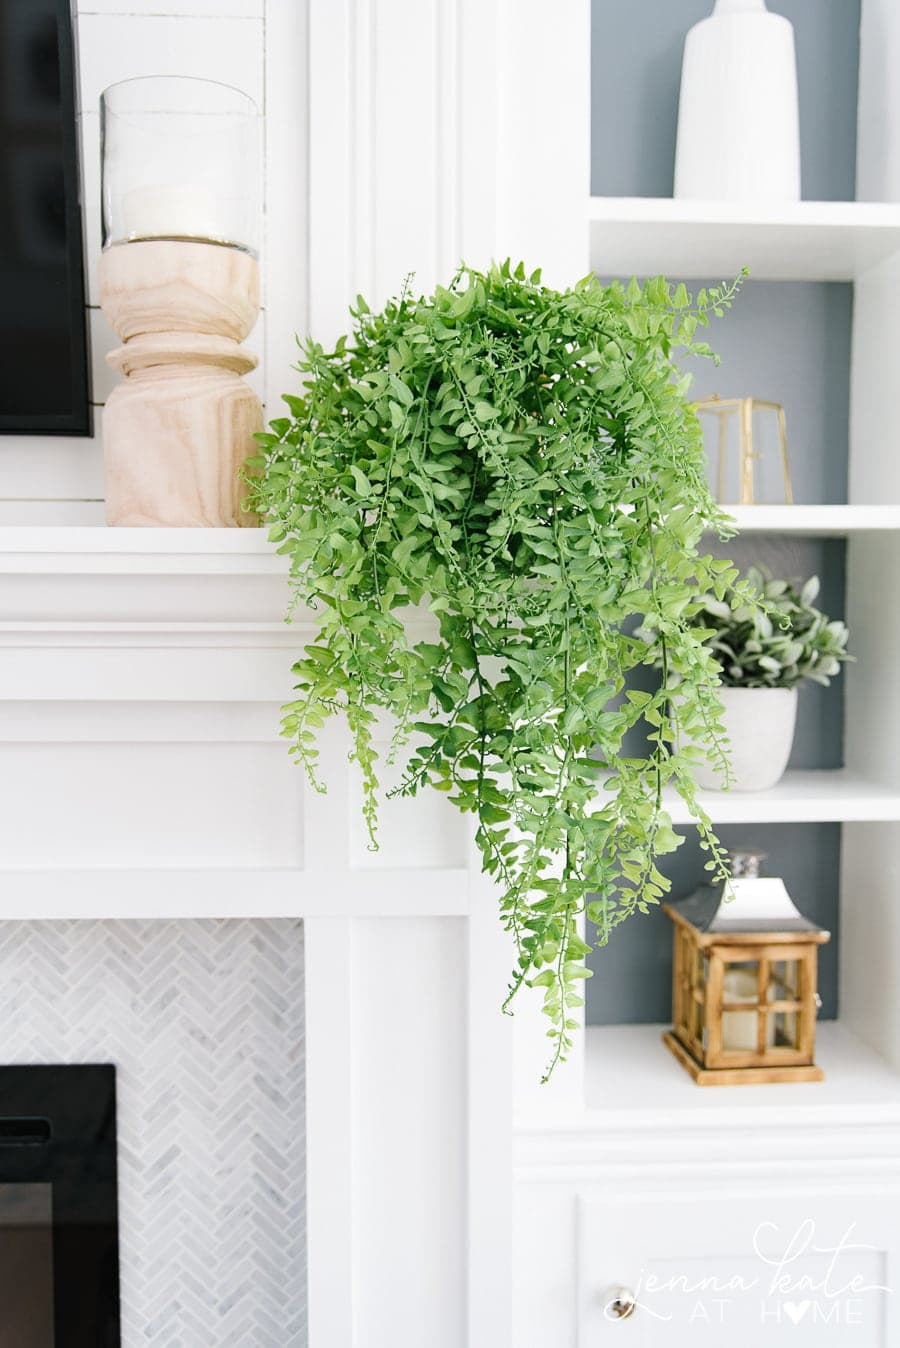 This easy faux trailing plant gives all the fresh green pops of color without the upkeep of a live plant